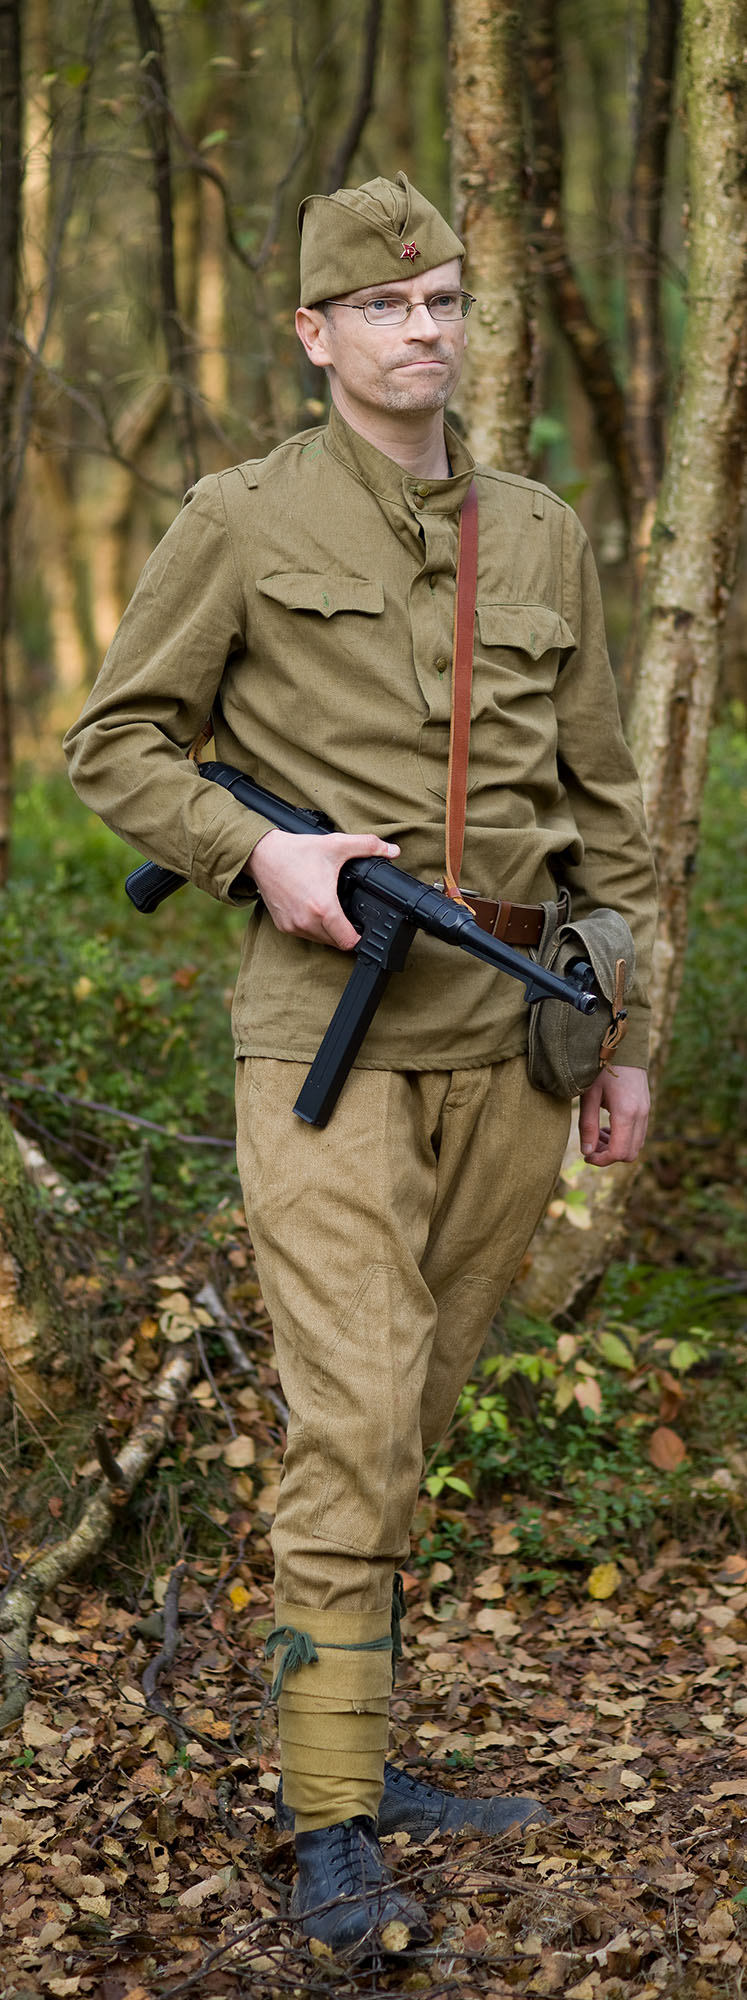 USSR basic summer uniform